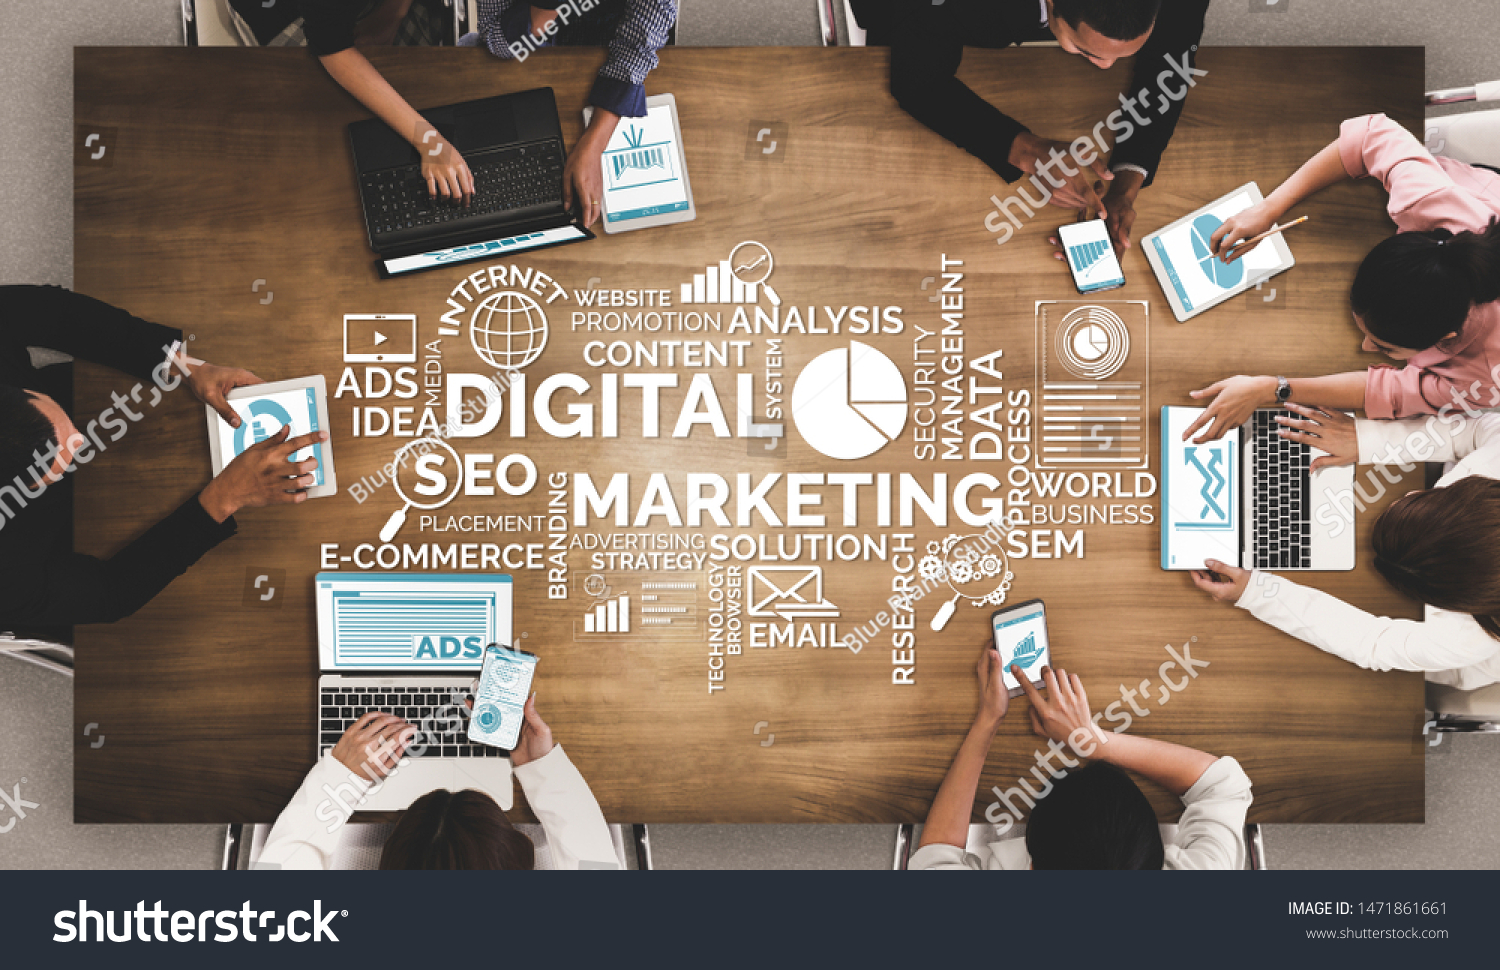 Digital Marketing Technology Solution for Online Business Concept - Graphic interface showing analytic diagram of online market promotion strategy on digital advertising platform via social media. #1471861661